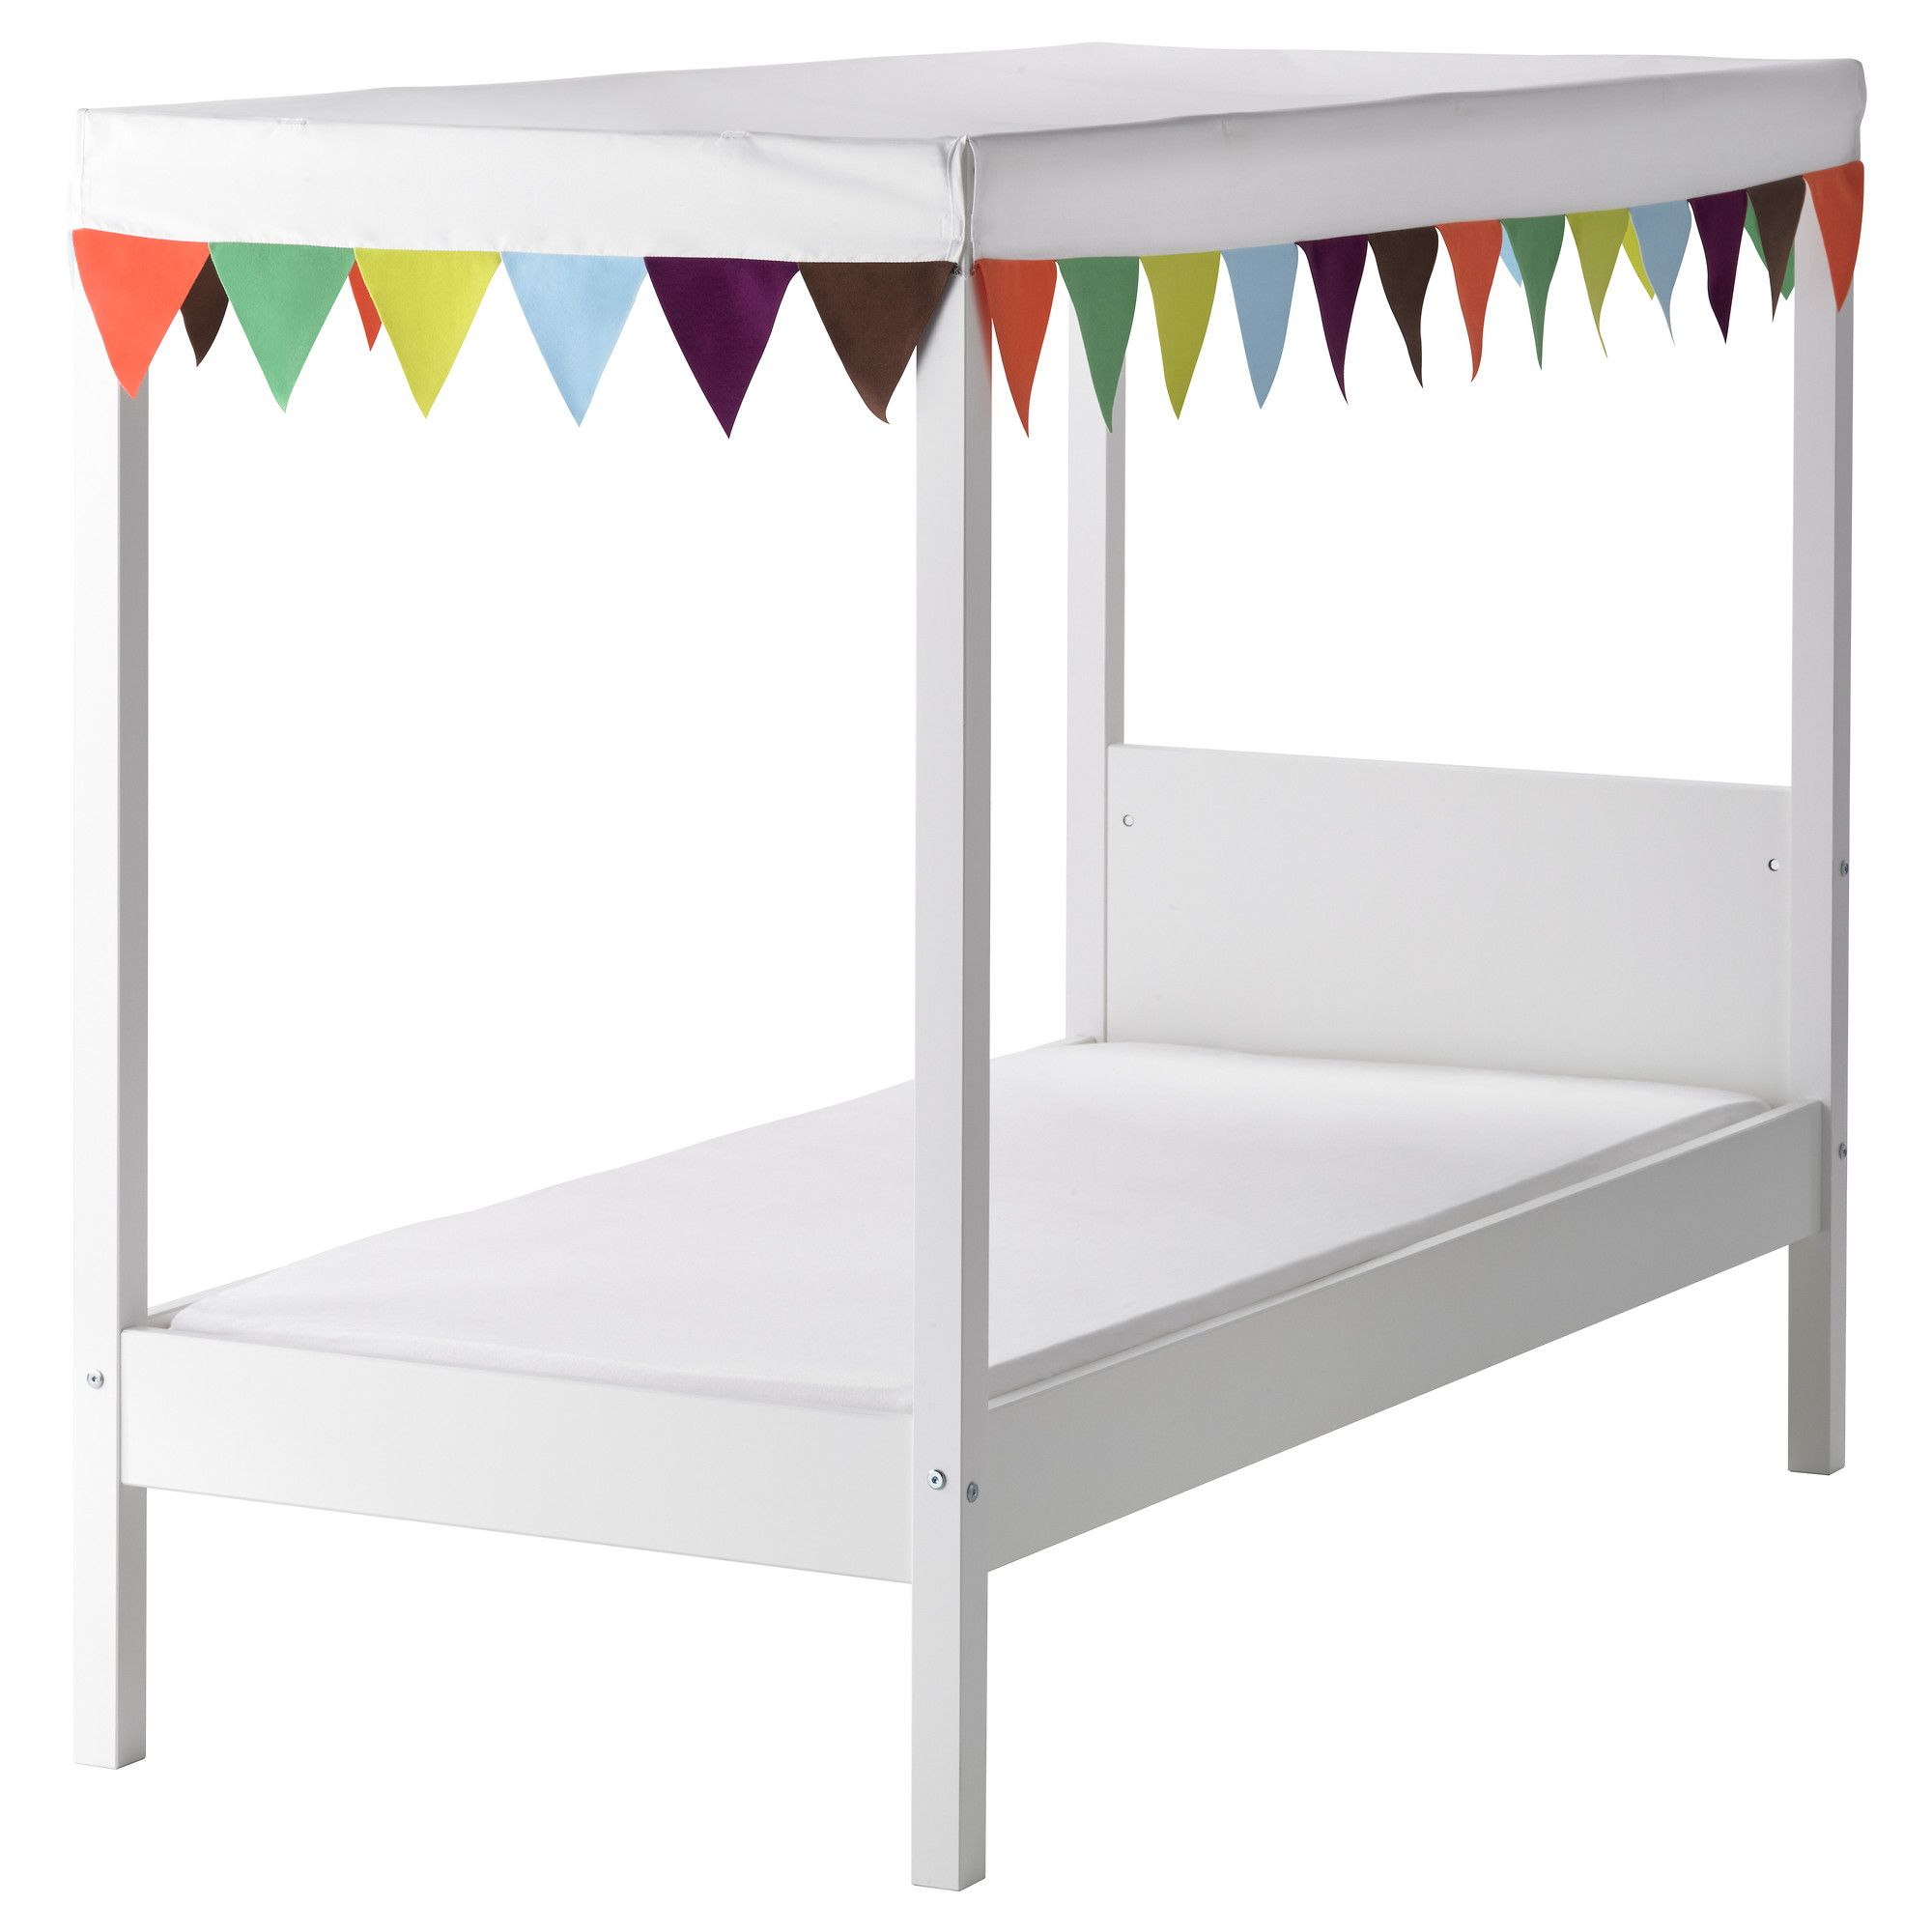 Ikea kinderbett  ÖVRE Bedframe m lattenbodem+bedhemel - IKEA | For the children ...